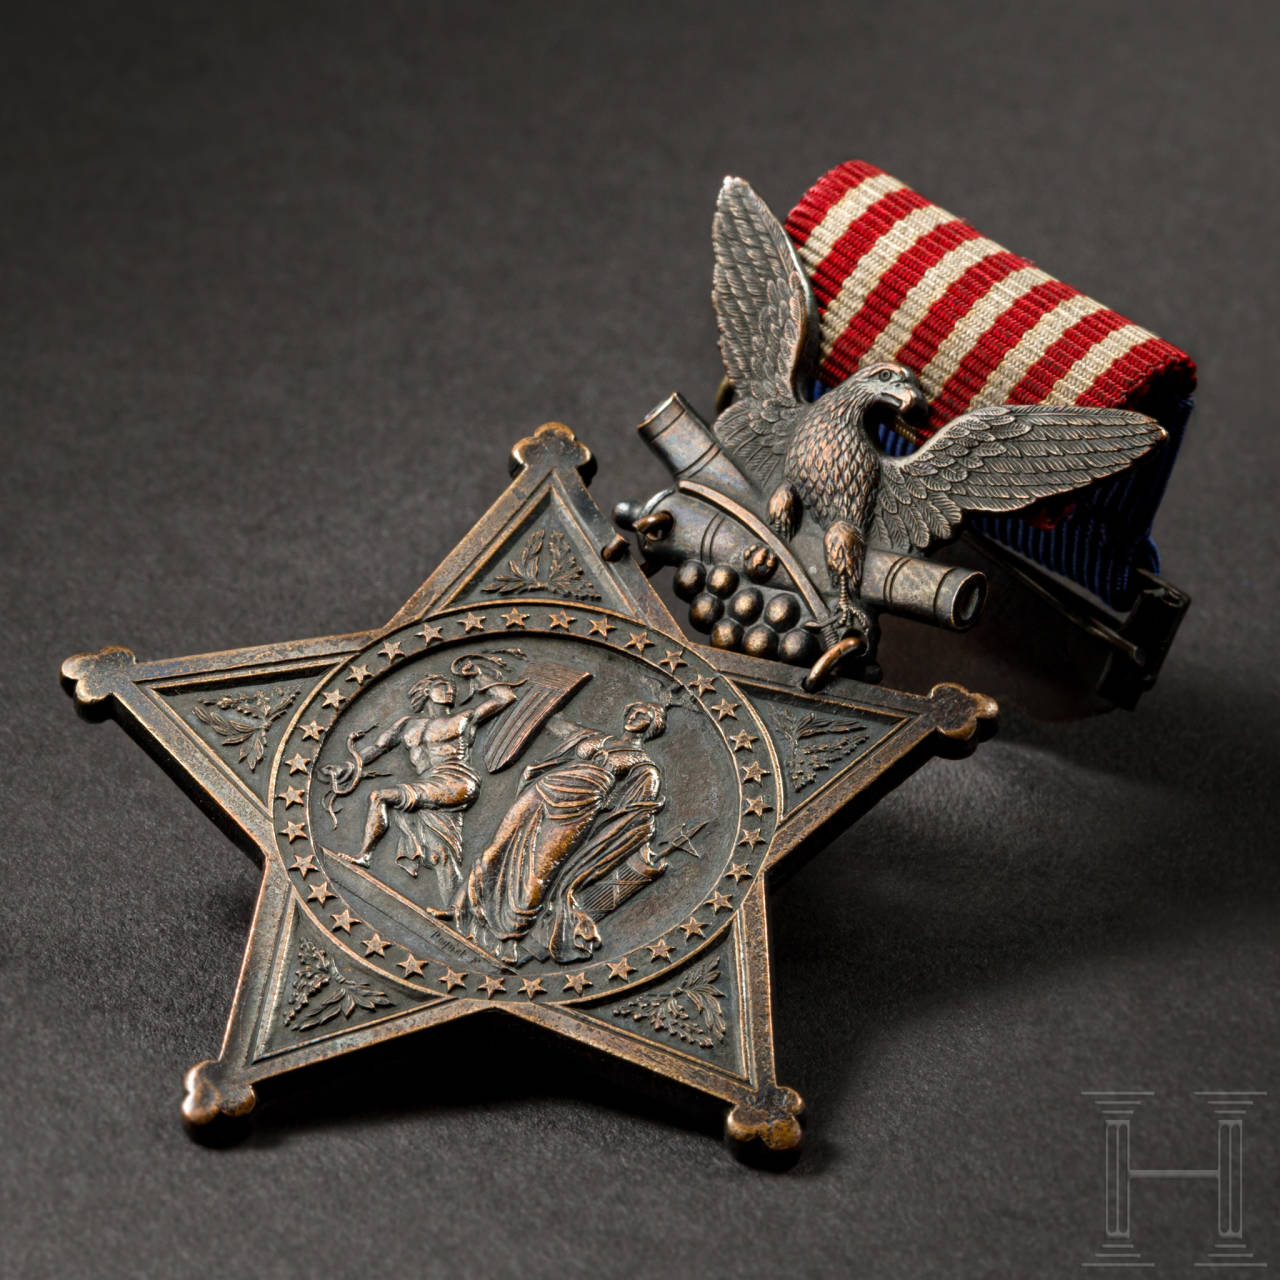 Private Machol - a Medal of Honor, awarded to the Indian Scout on 12 April 1875